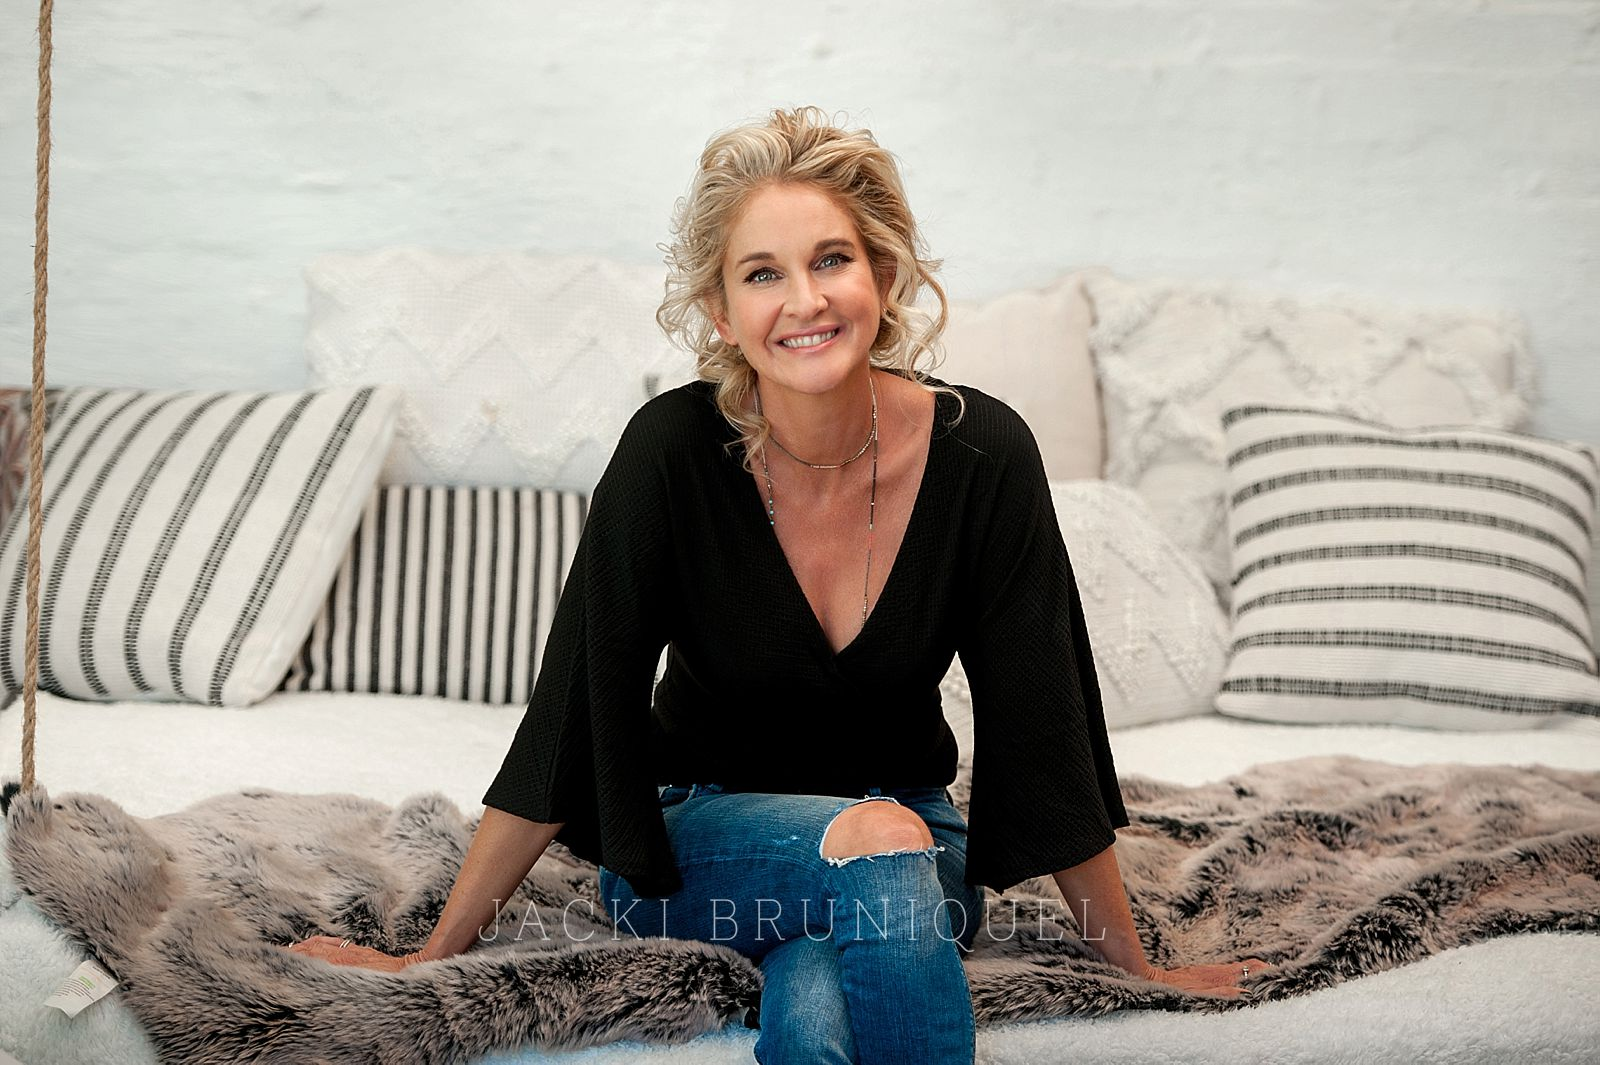 Creative branding shoot  of business women Deborah Goode shot by top South African portrait photographer Jacki Bruniquel.